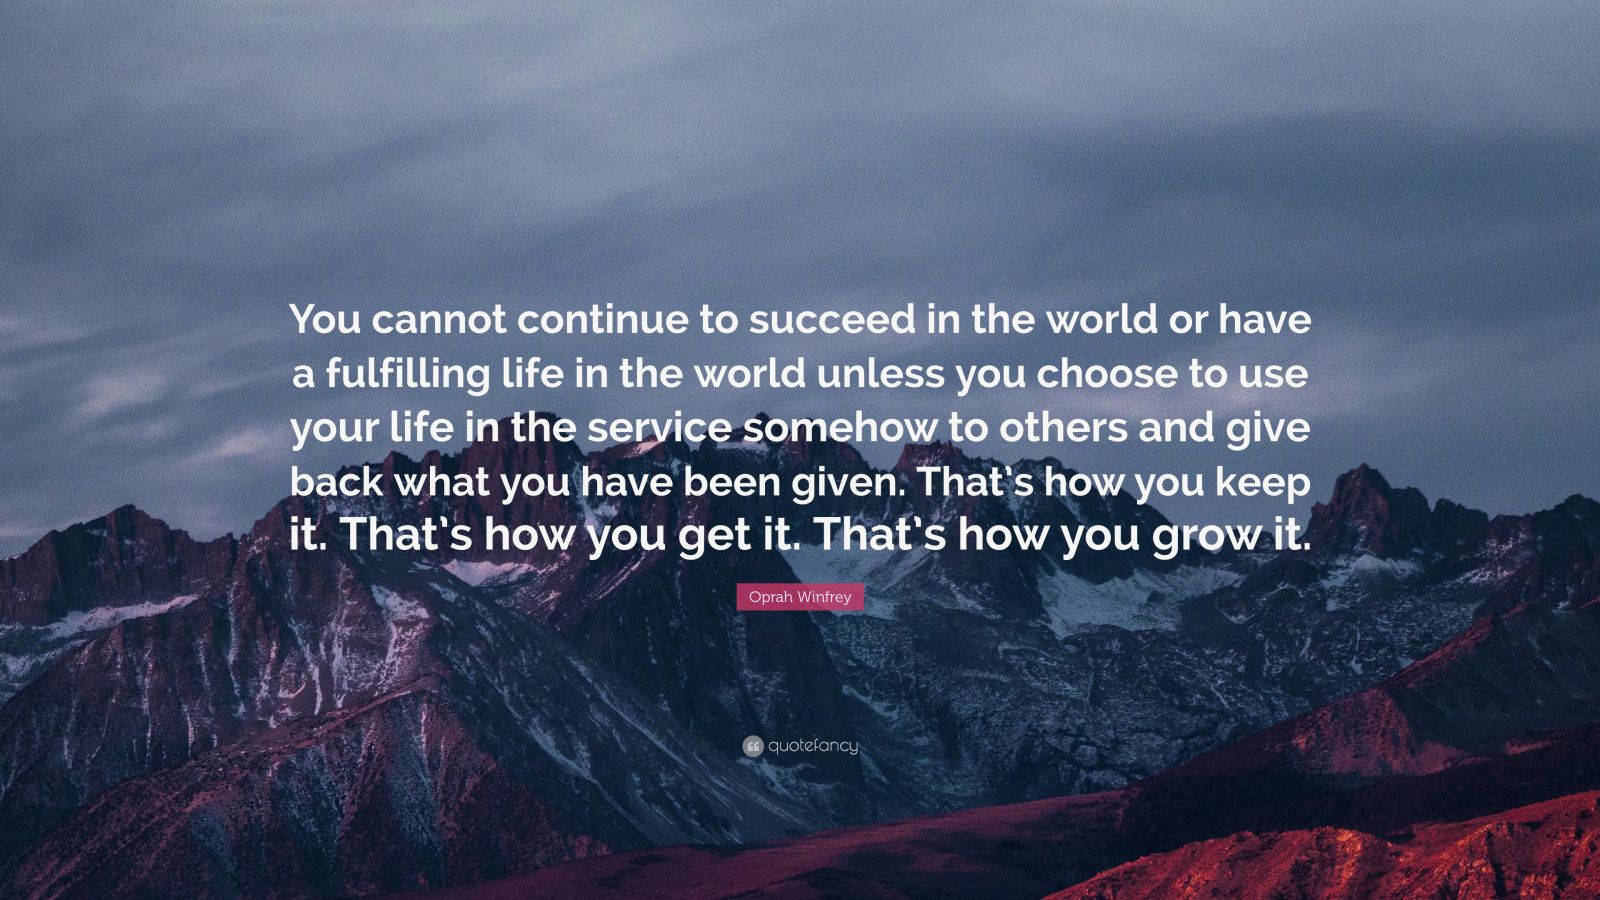 """Oprah Winfrey Quote: """"You cannot continue to succeed in the world or have a fulfilling life in the world unless you choose to use your life in the service somehow to others and give back what you have been given. That's how you keep it. That's how you get it. That's how you grow it."""""""